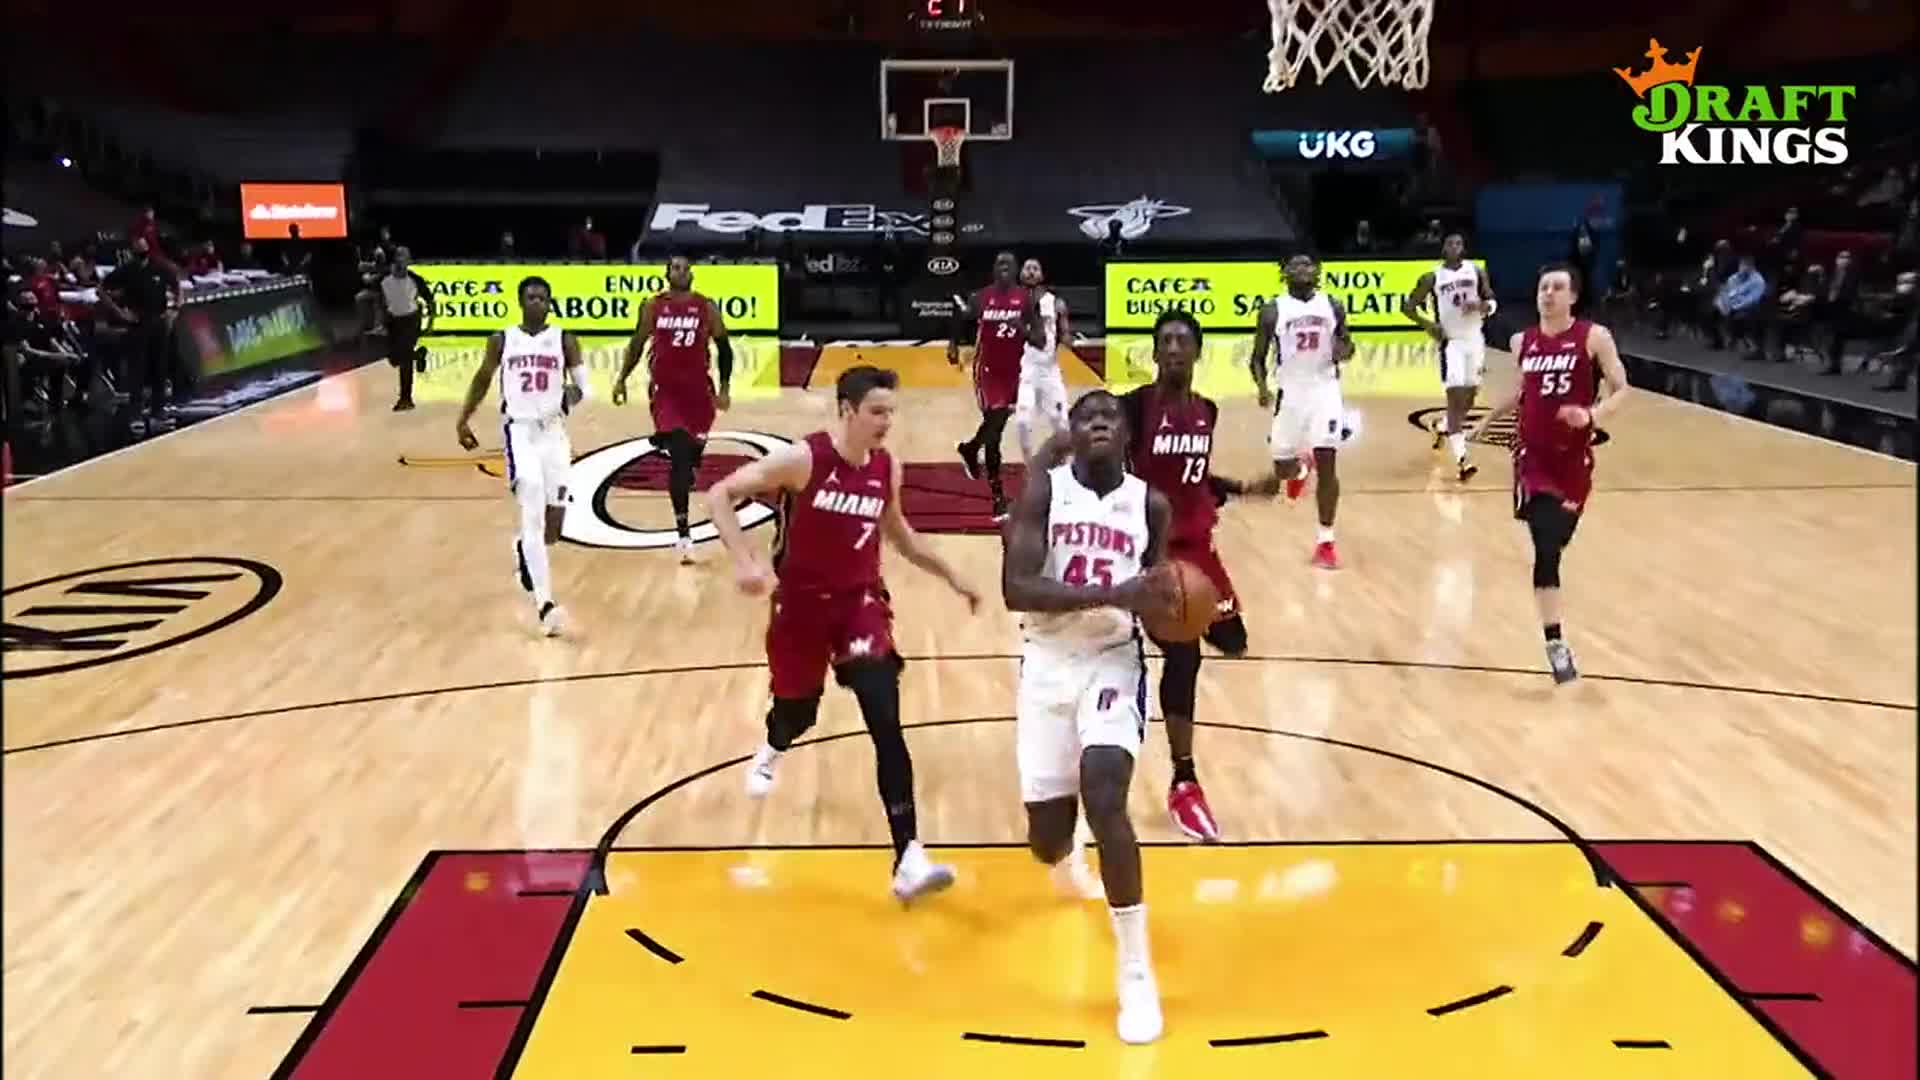 Dunk of the Week, presented by Draft Kings: Sekou Doumbouya